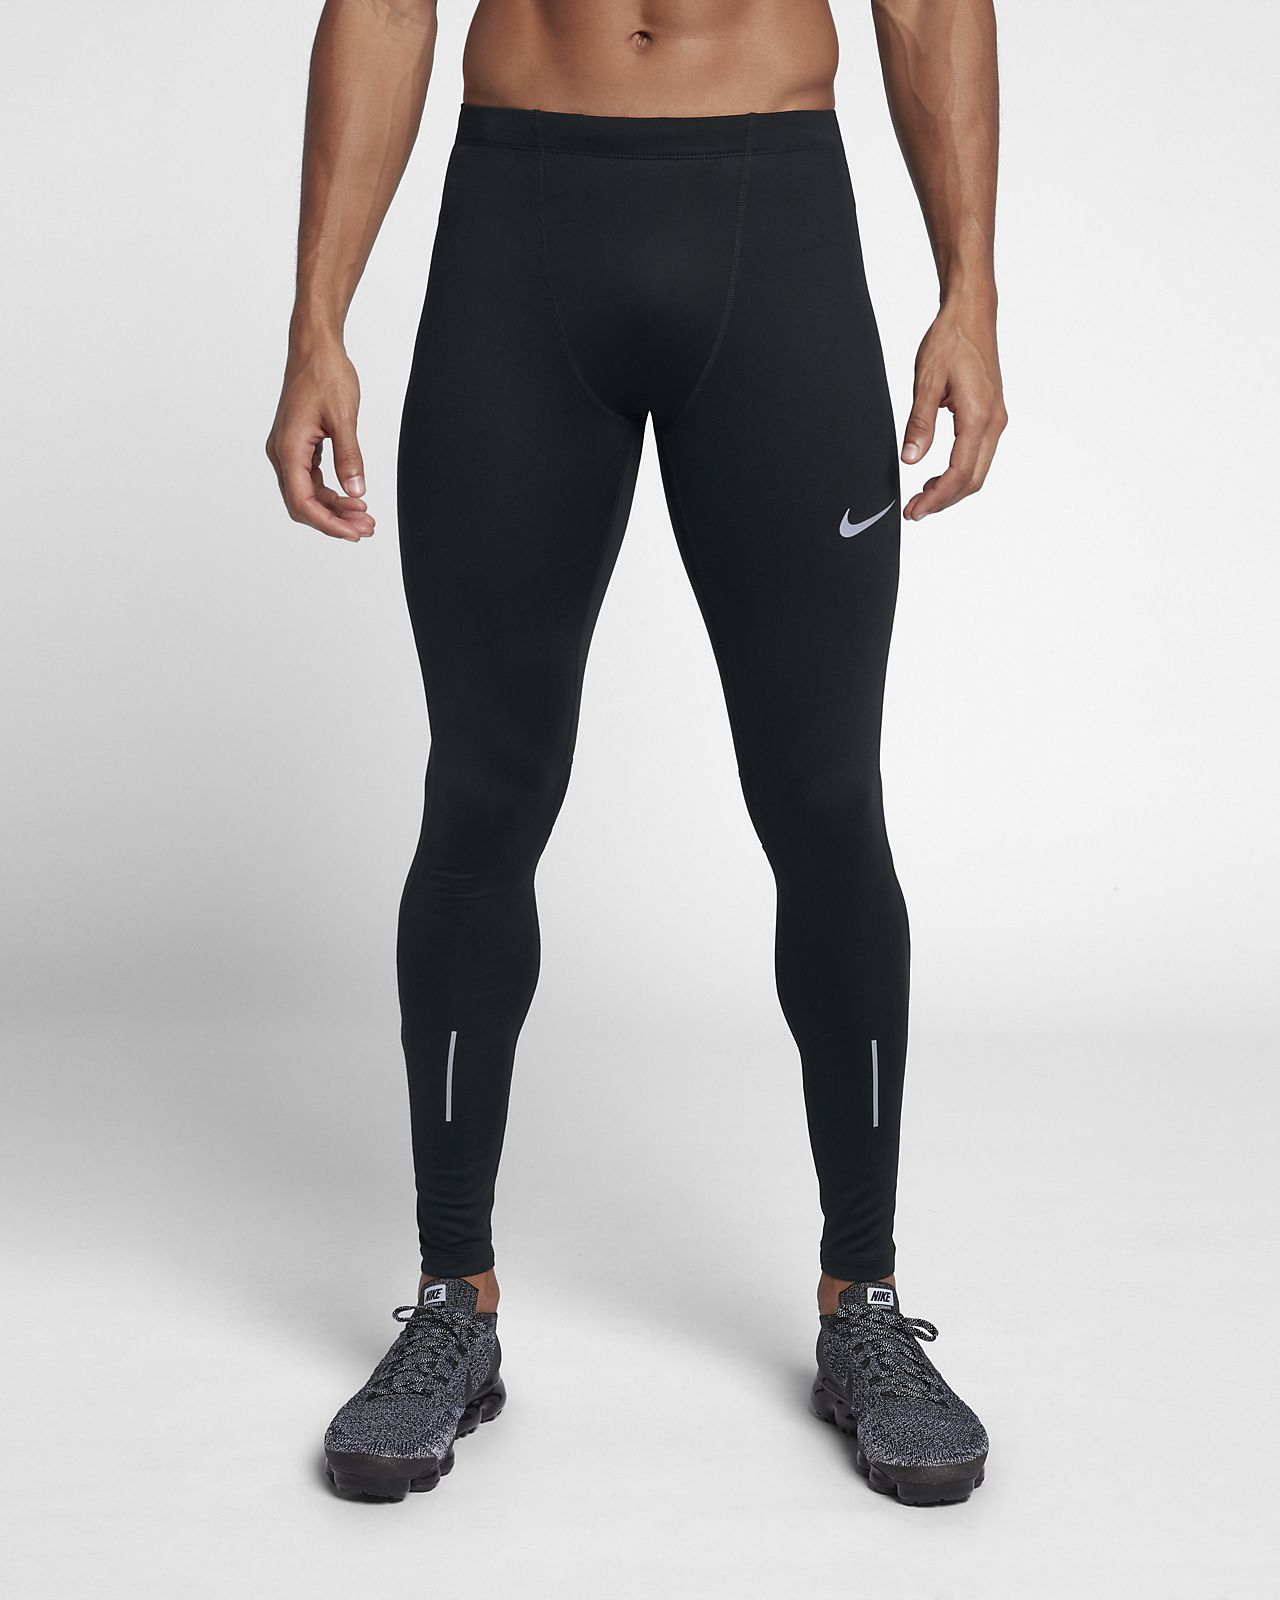 Collant de running Nike Run 72 cm pour Homme